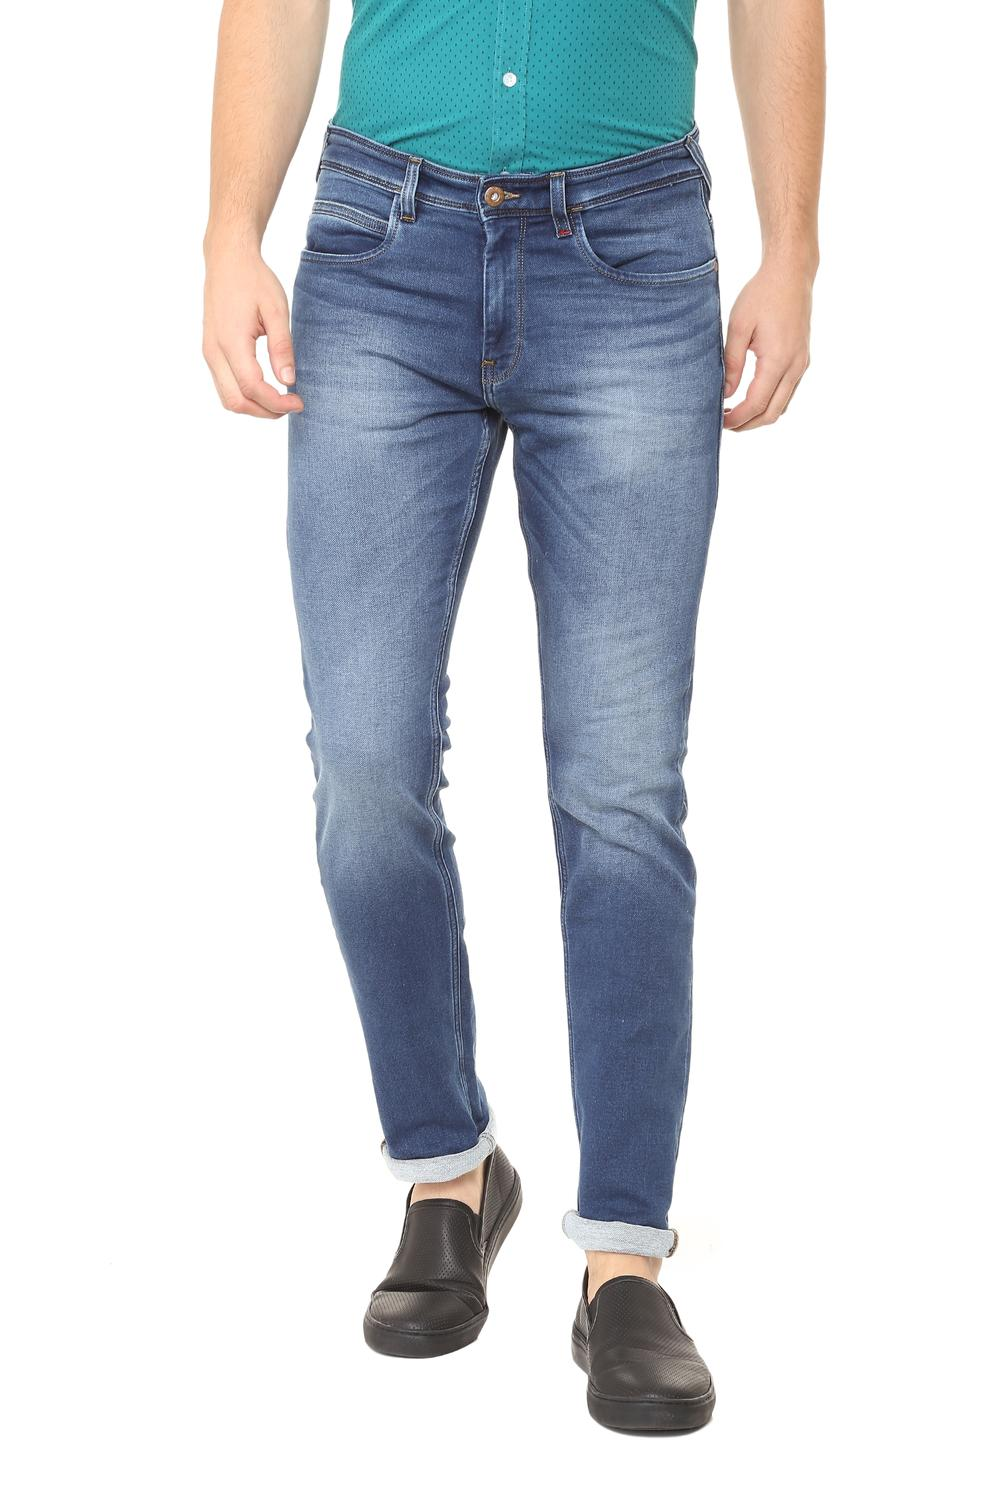 d7330270 Solly Jeans Co Jeans, Allen Solly Blue Jeans for Men at Allensolly.com